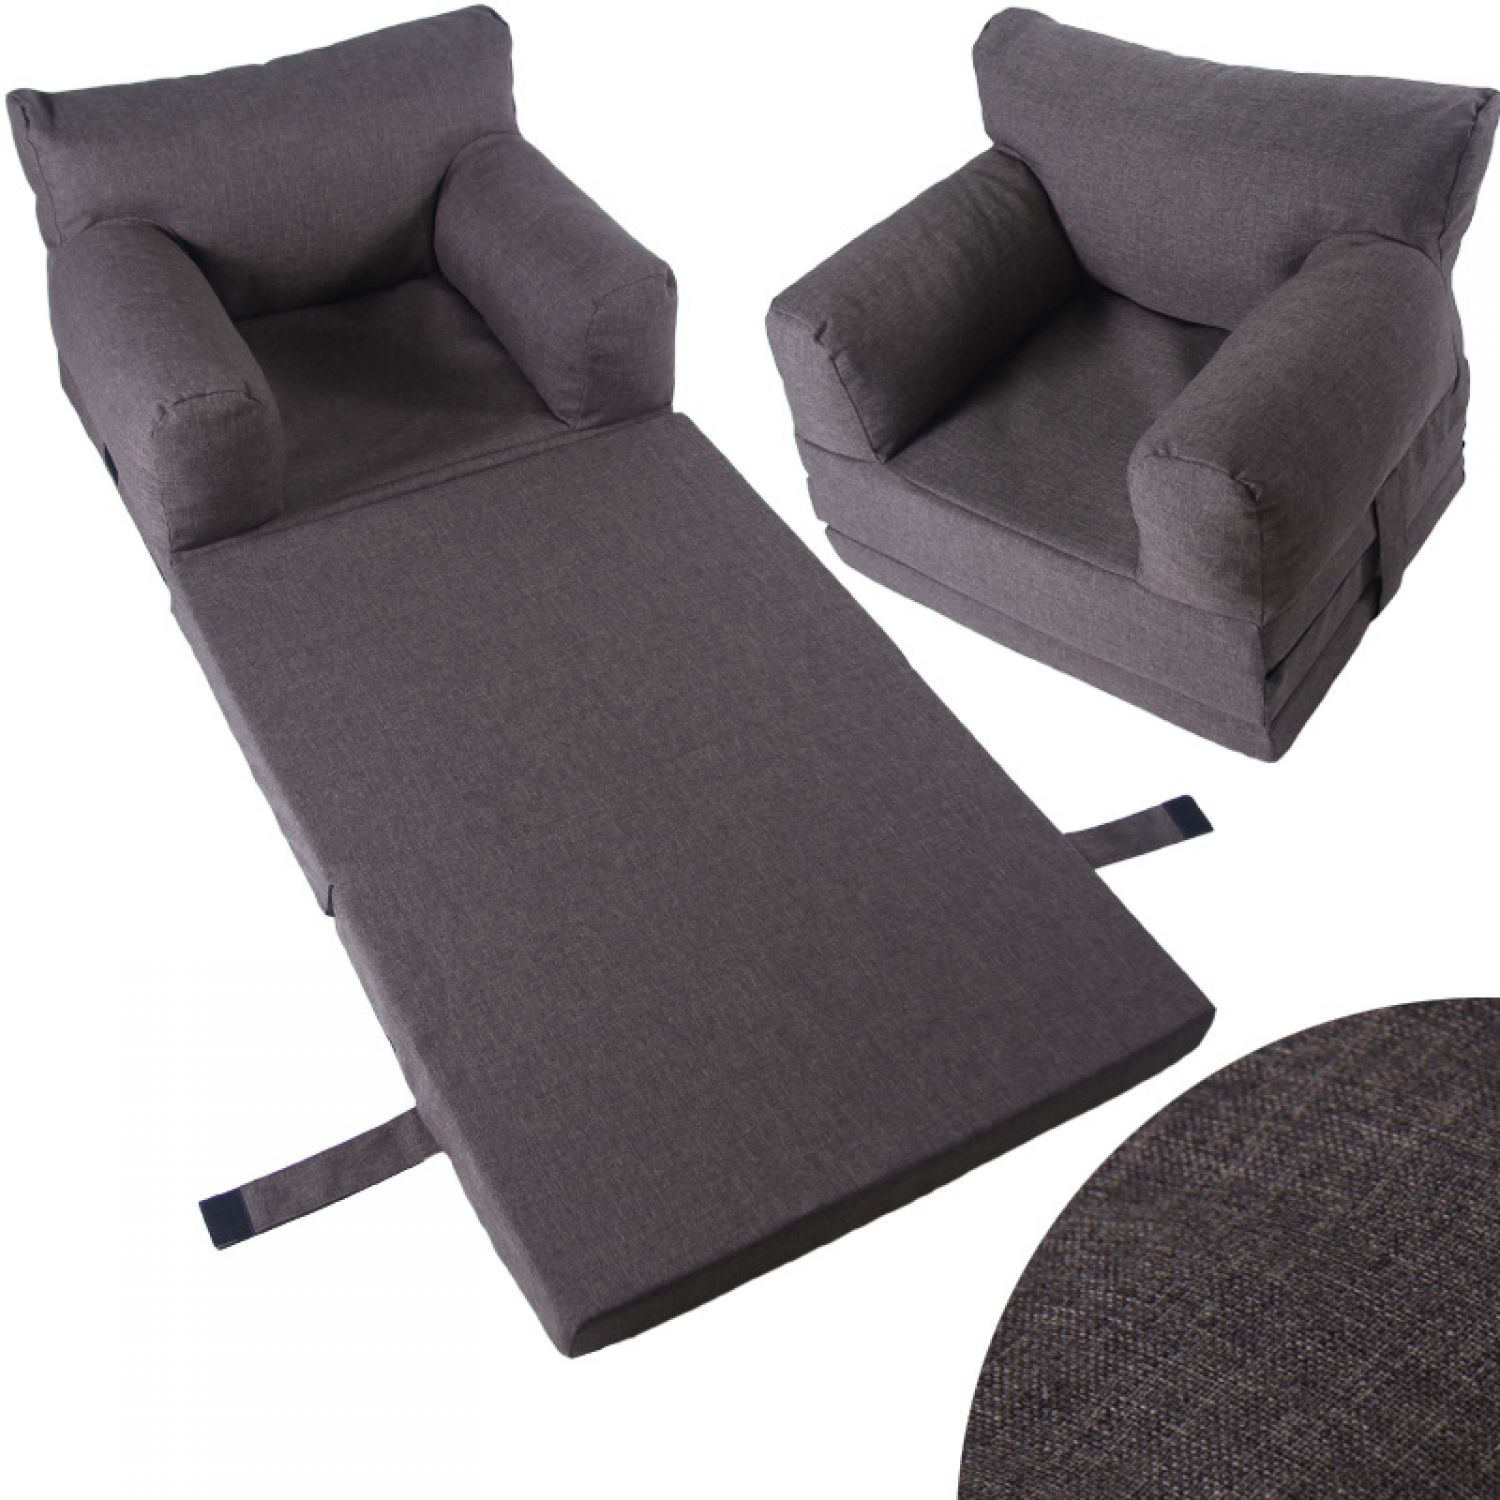 kindersessel kindersofa kinderm bel sessel kinder kinderzimmer geschenk hocker ebay. Black Bedroom Furniture Sets. Home Design Ideas